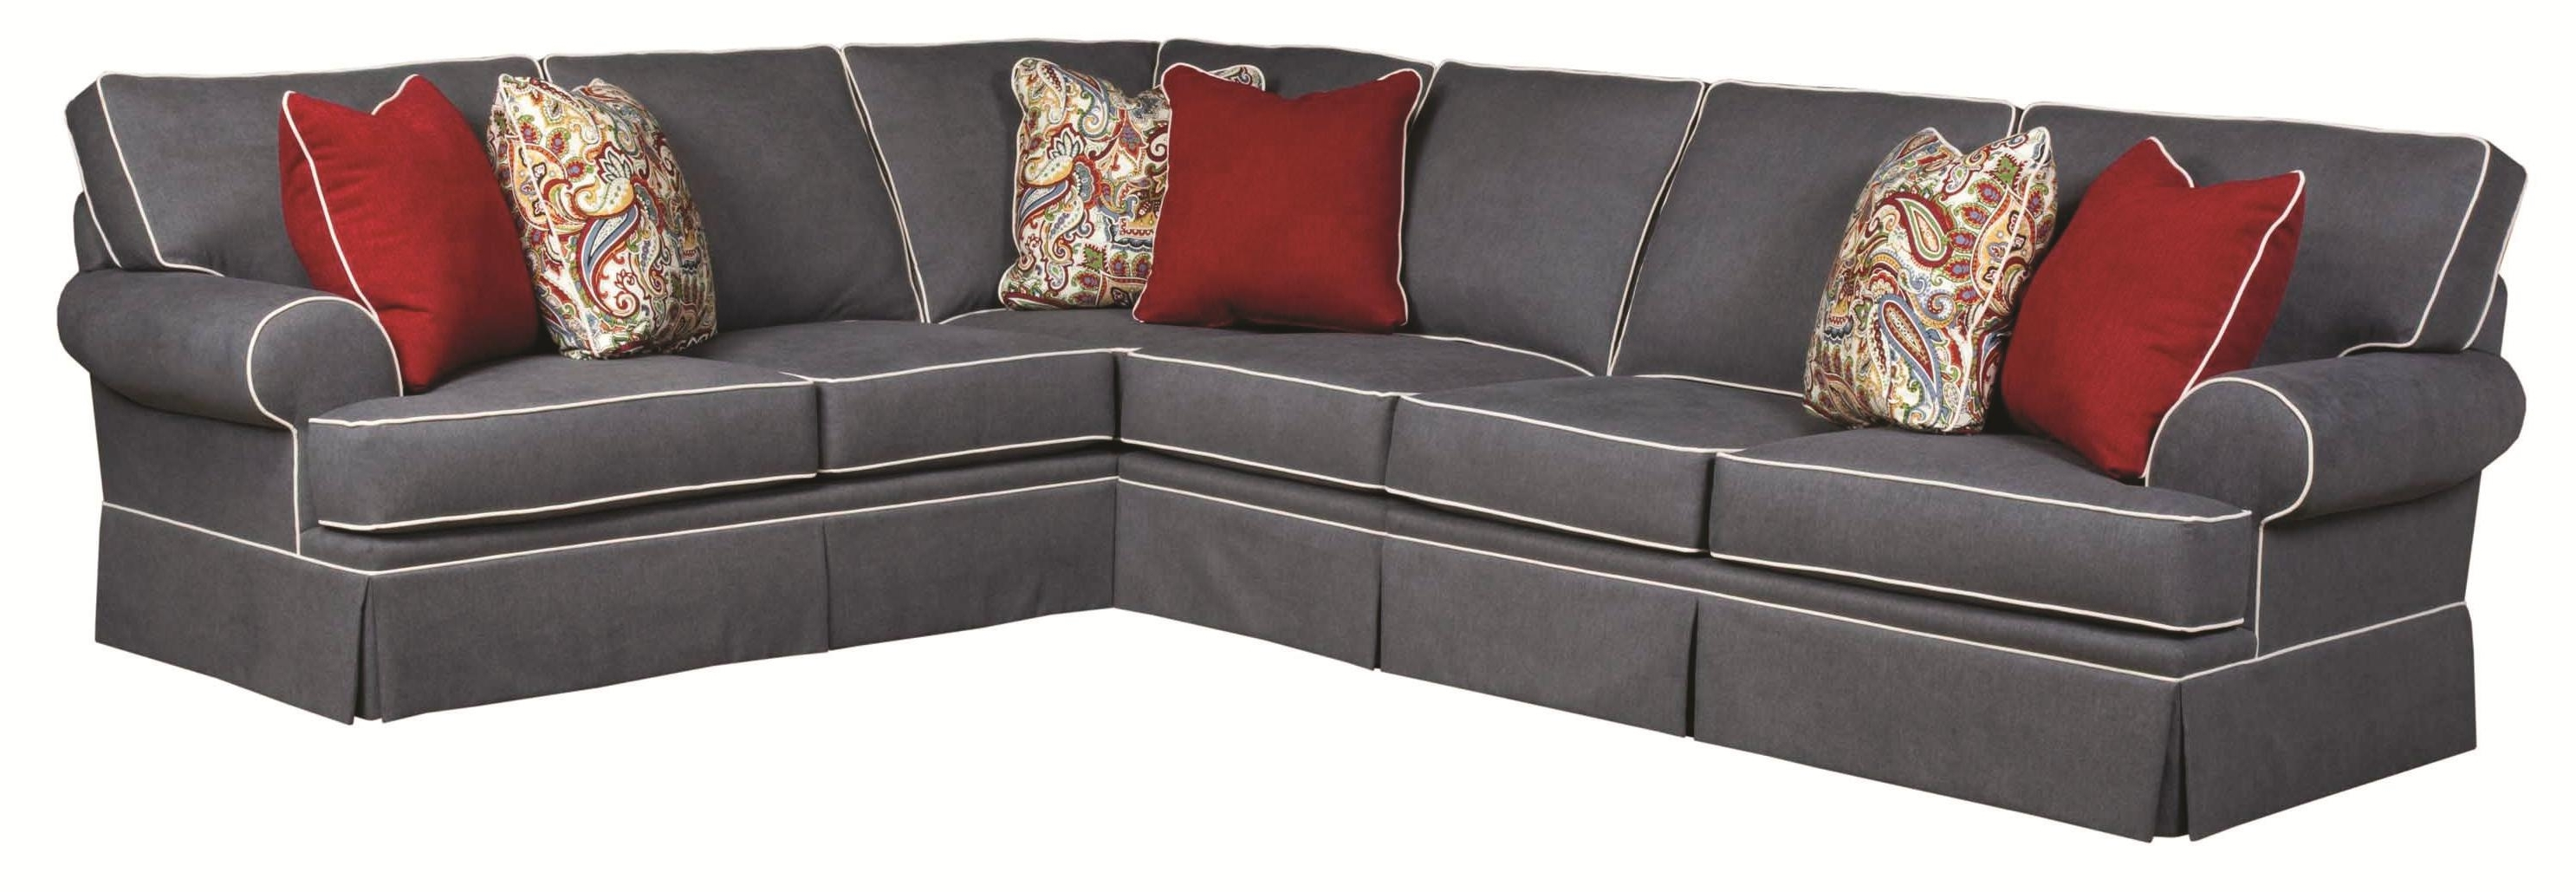 Popular Broyhill Sectional Sofas With Regard To Broyhill Furniture Emily Traditional 3 Piece Sectional Sofa With (View 6 of 20)